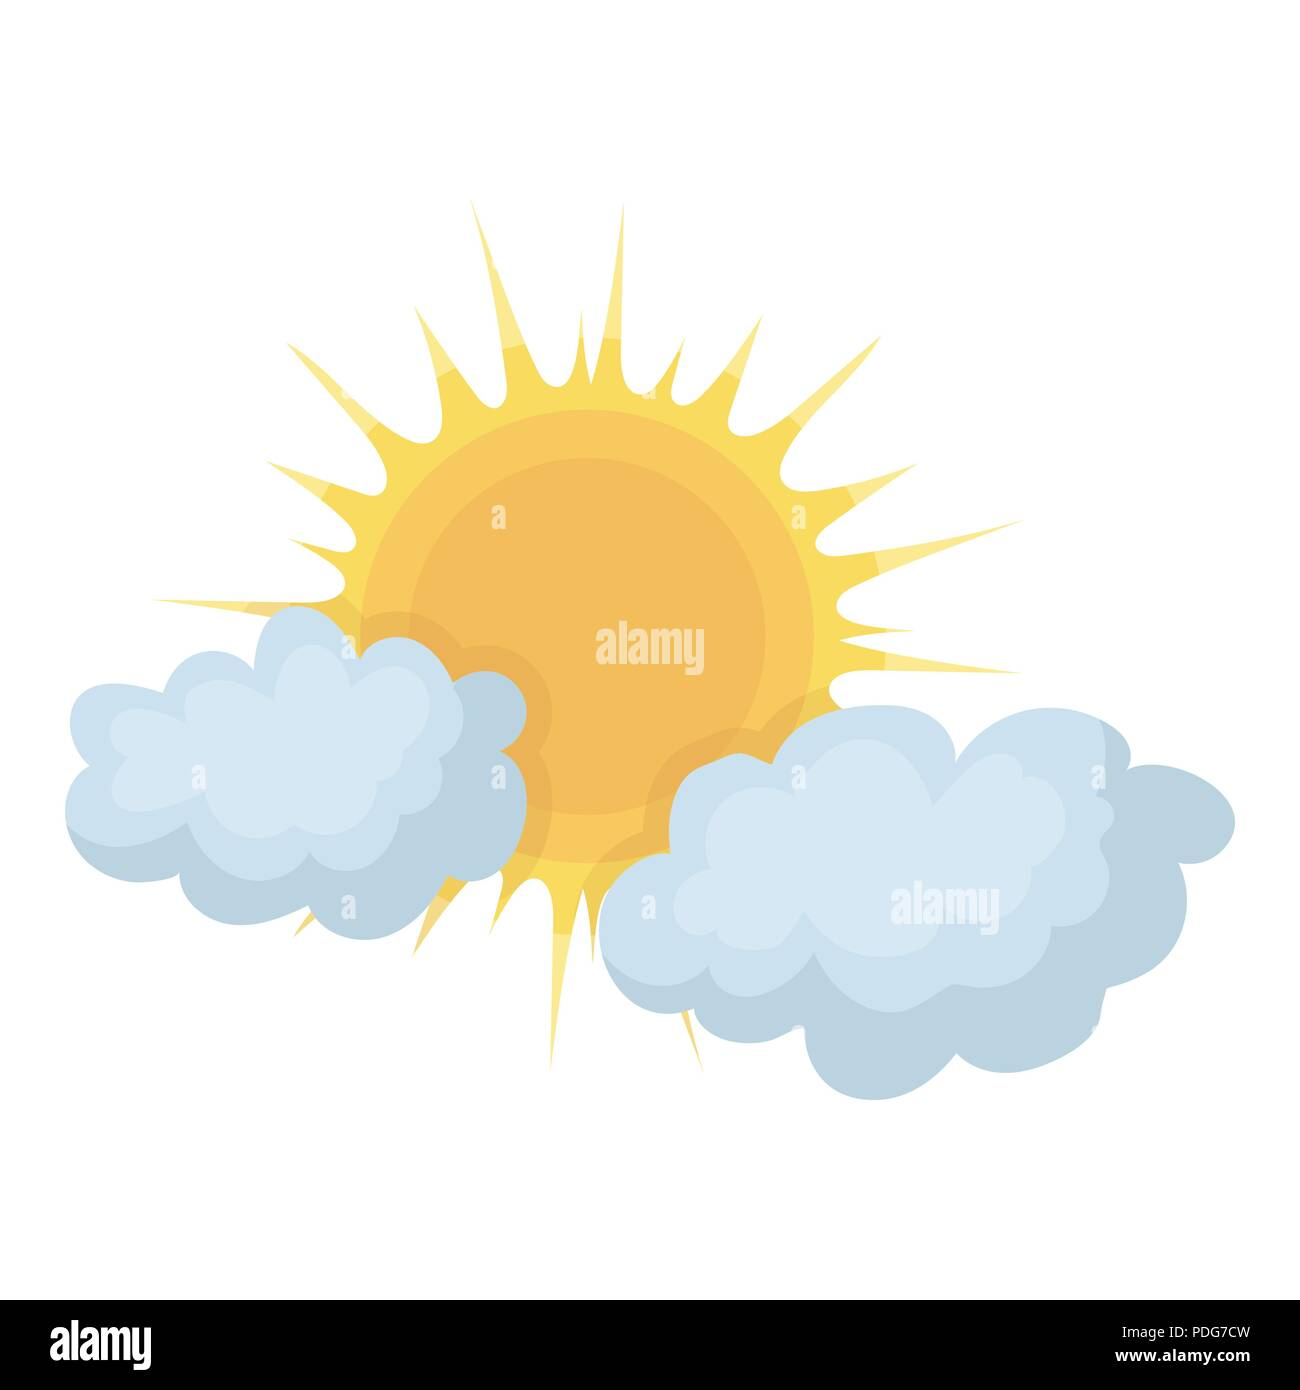 cloudy weather icon in cartoon style isolated on white